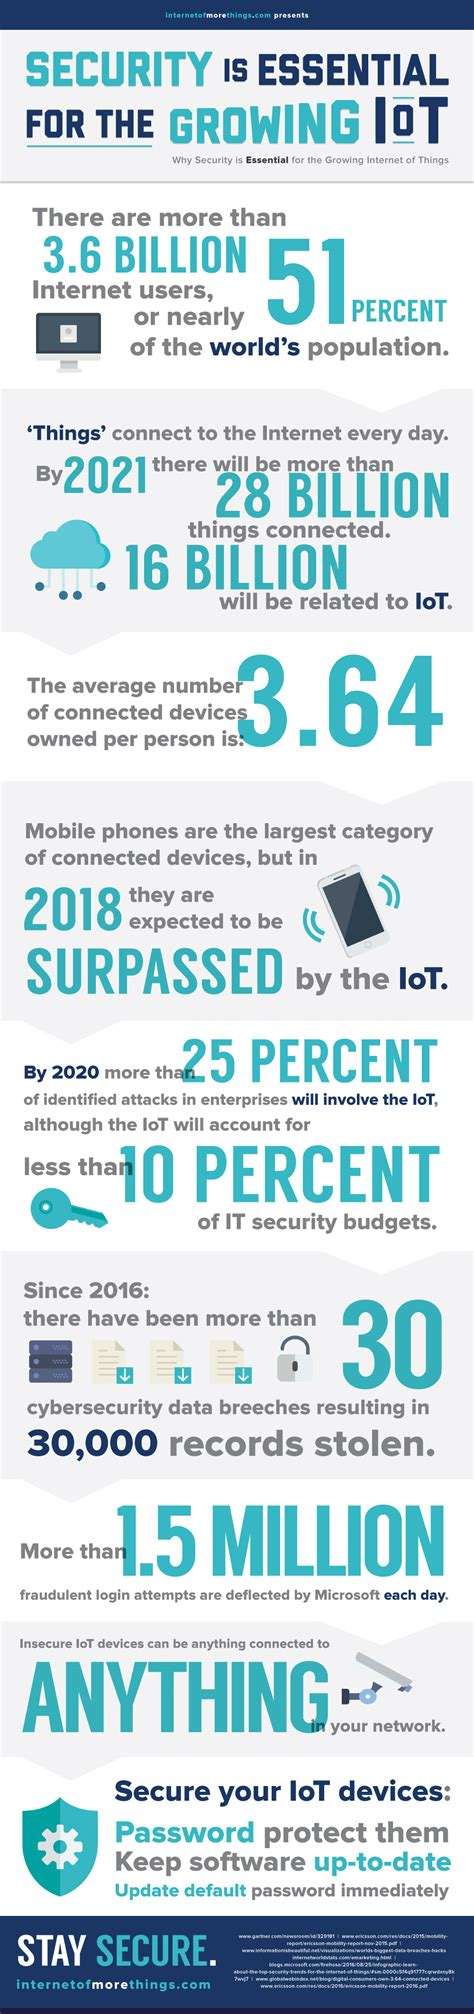 iot testing cookbook identify vulnerabilities and secure your smart devices books why security is essential for the iot infographic